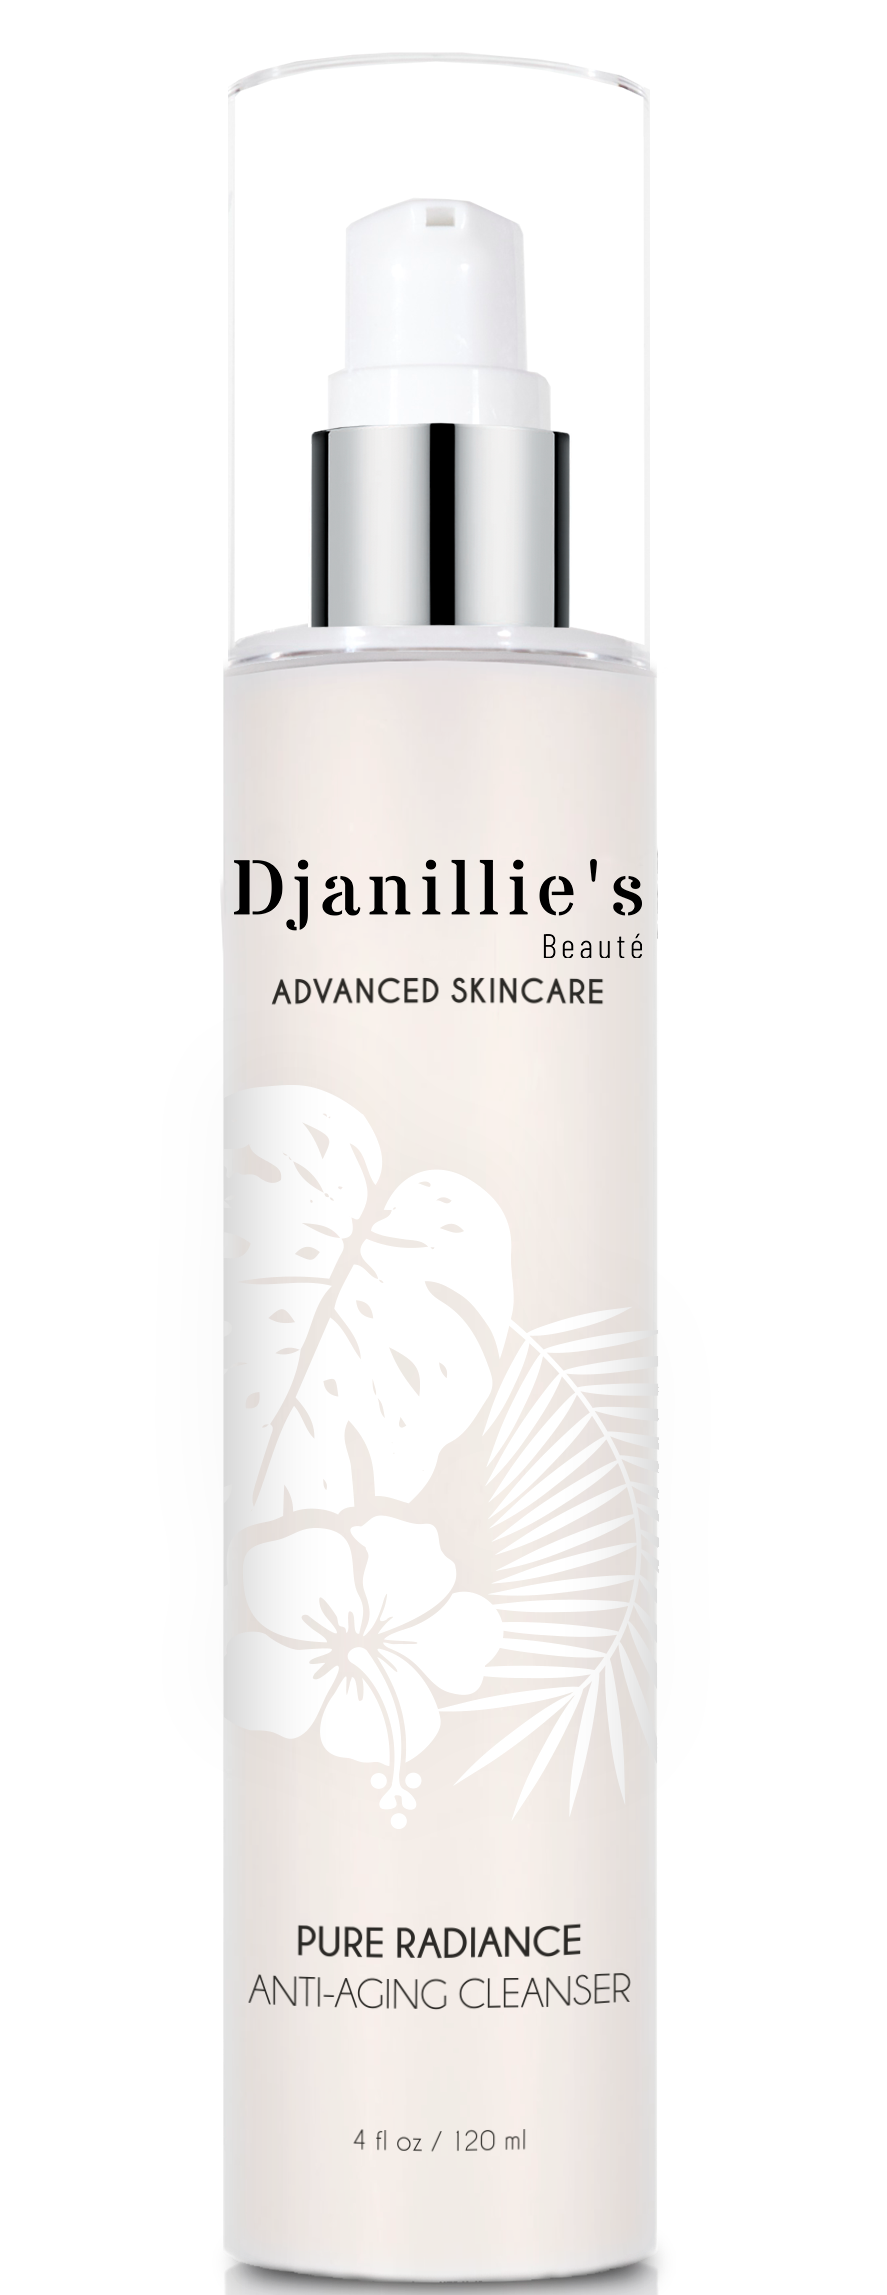 Pure Radiance Anti-Aging Cleanser - Djanillie's